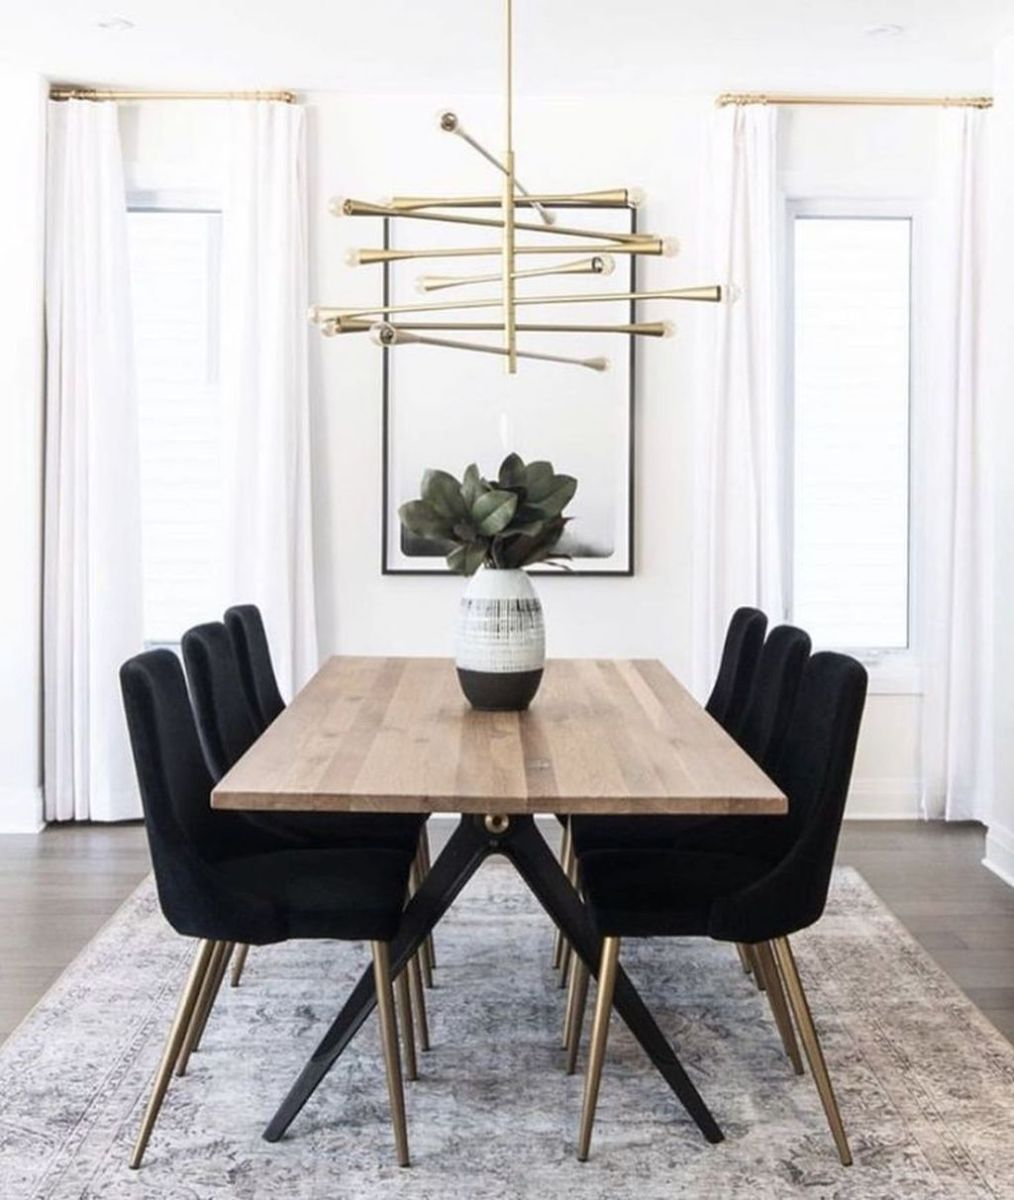 Admirable Dining Room Design Ideas You Will Love 32